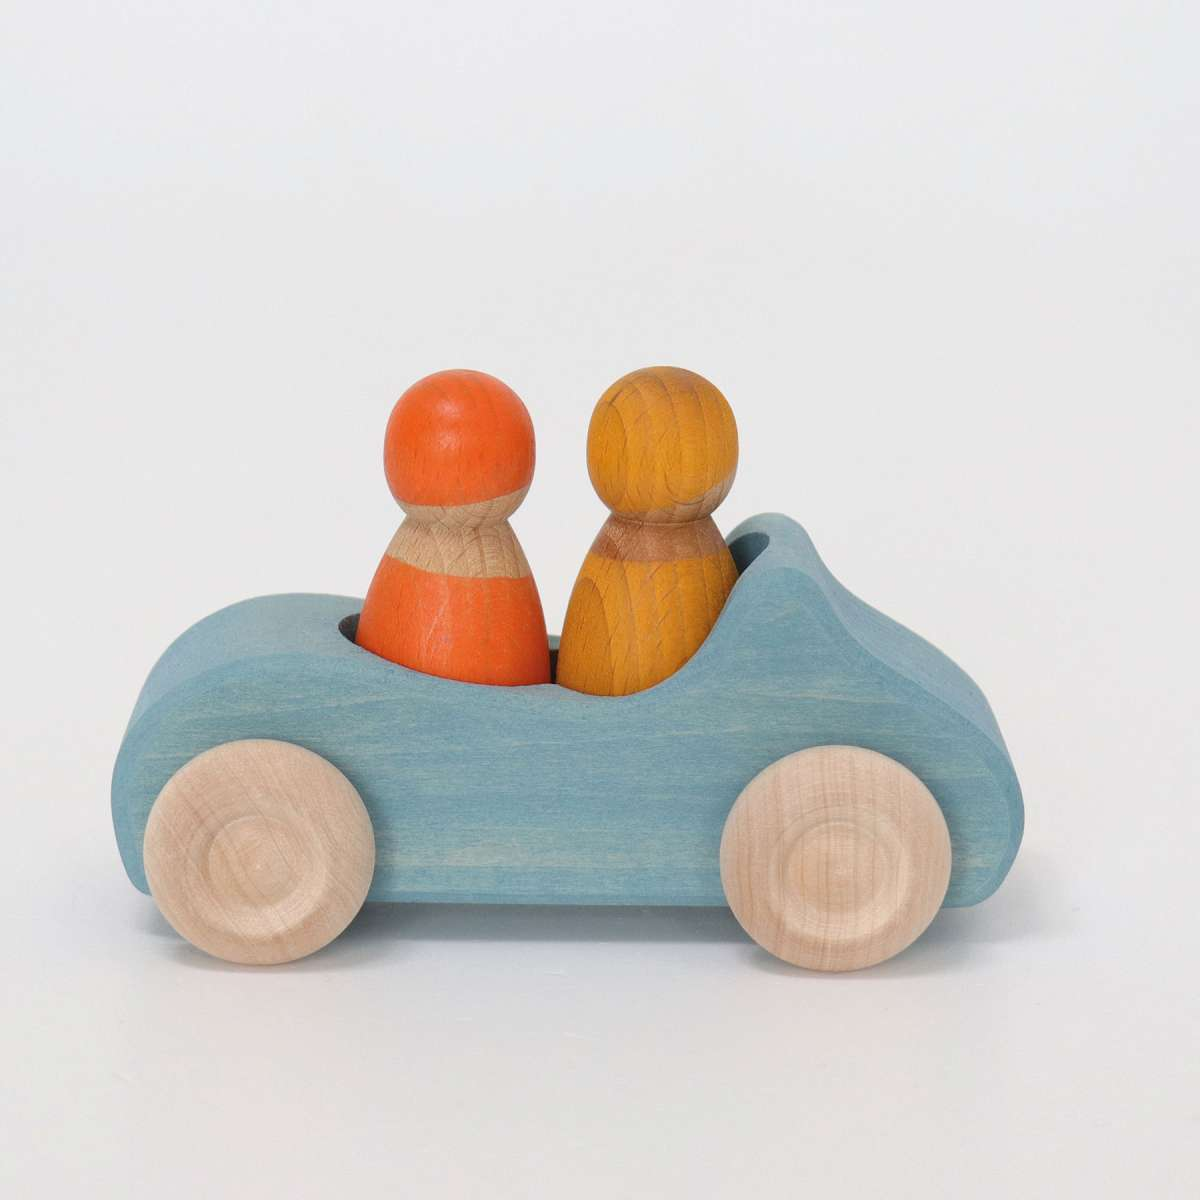 Grimms Large Blue Convertible Car Grimms Wooden Toys at Little Earth Nest Eco Shop